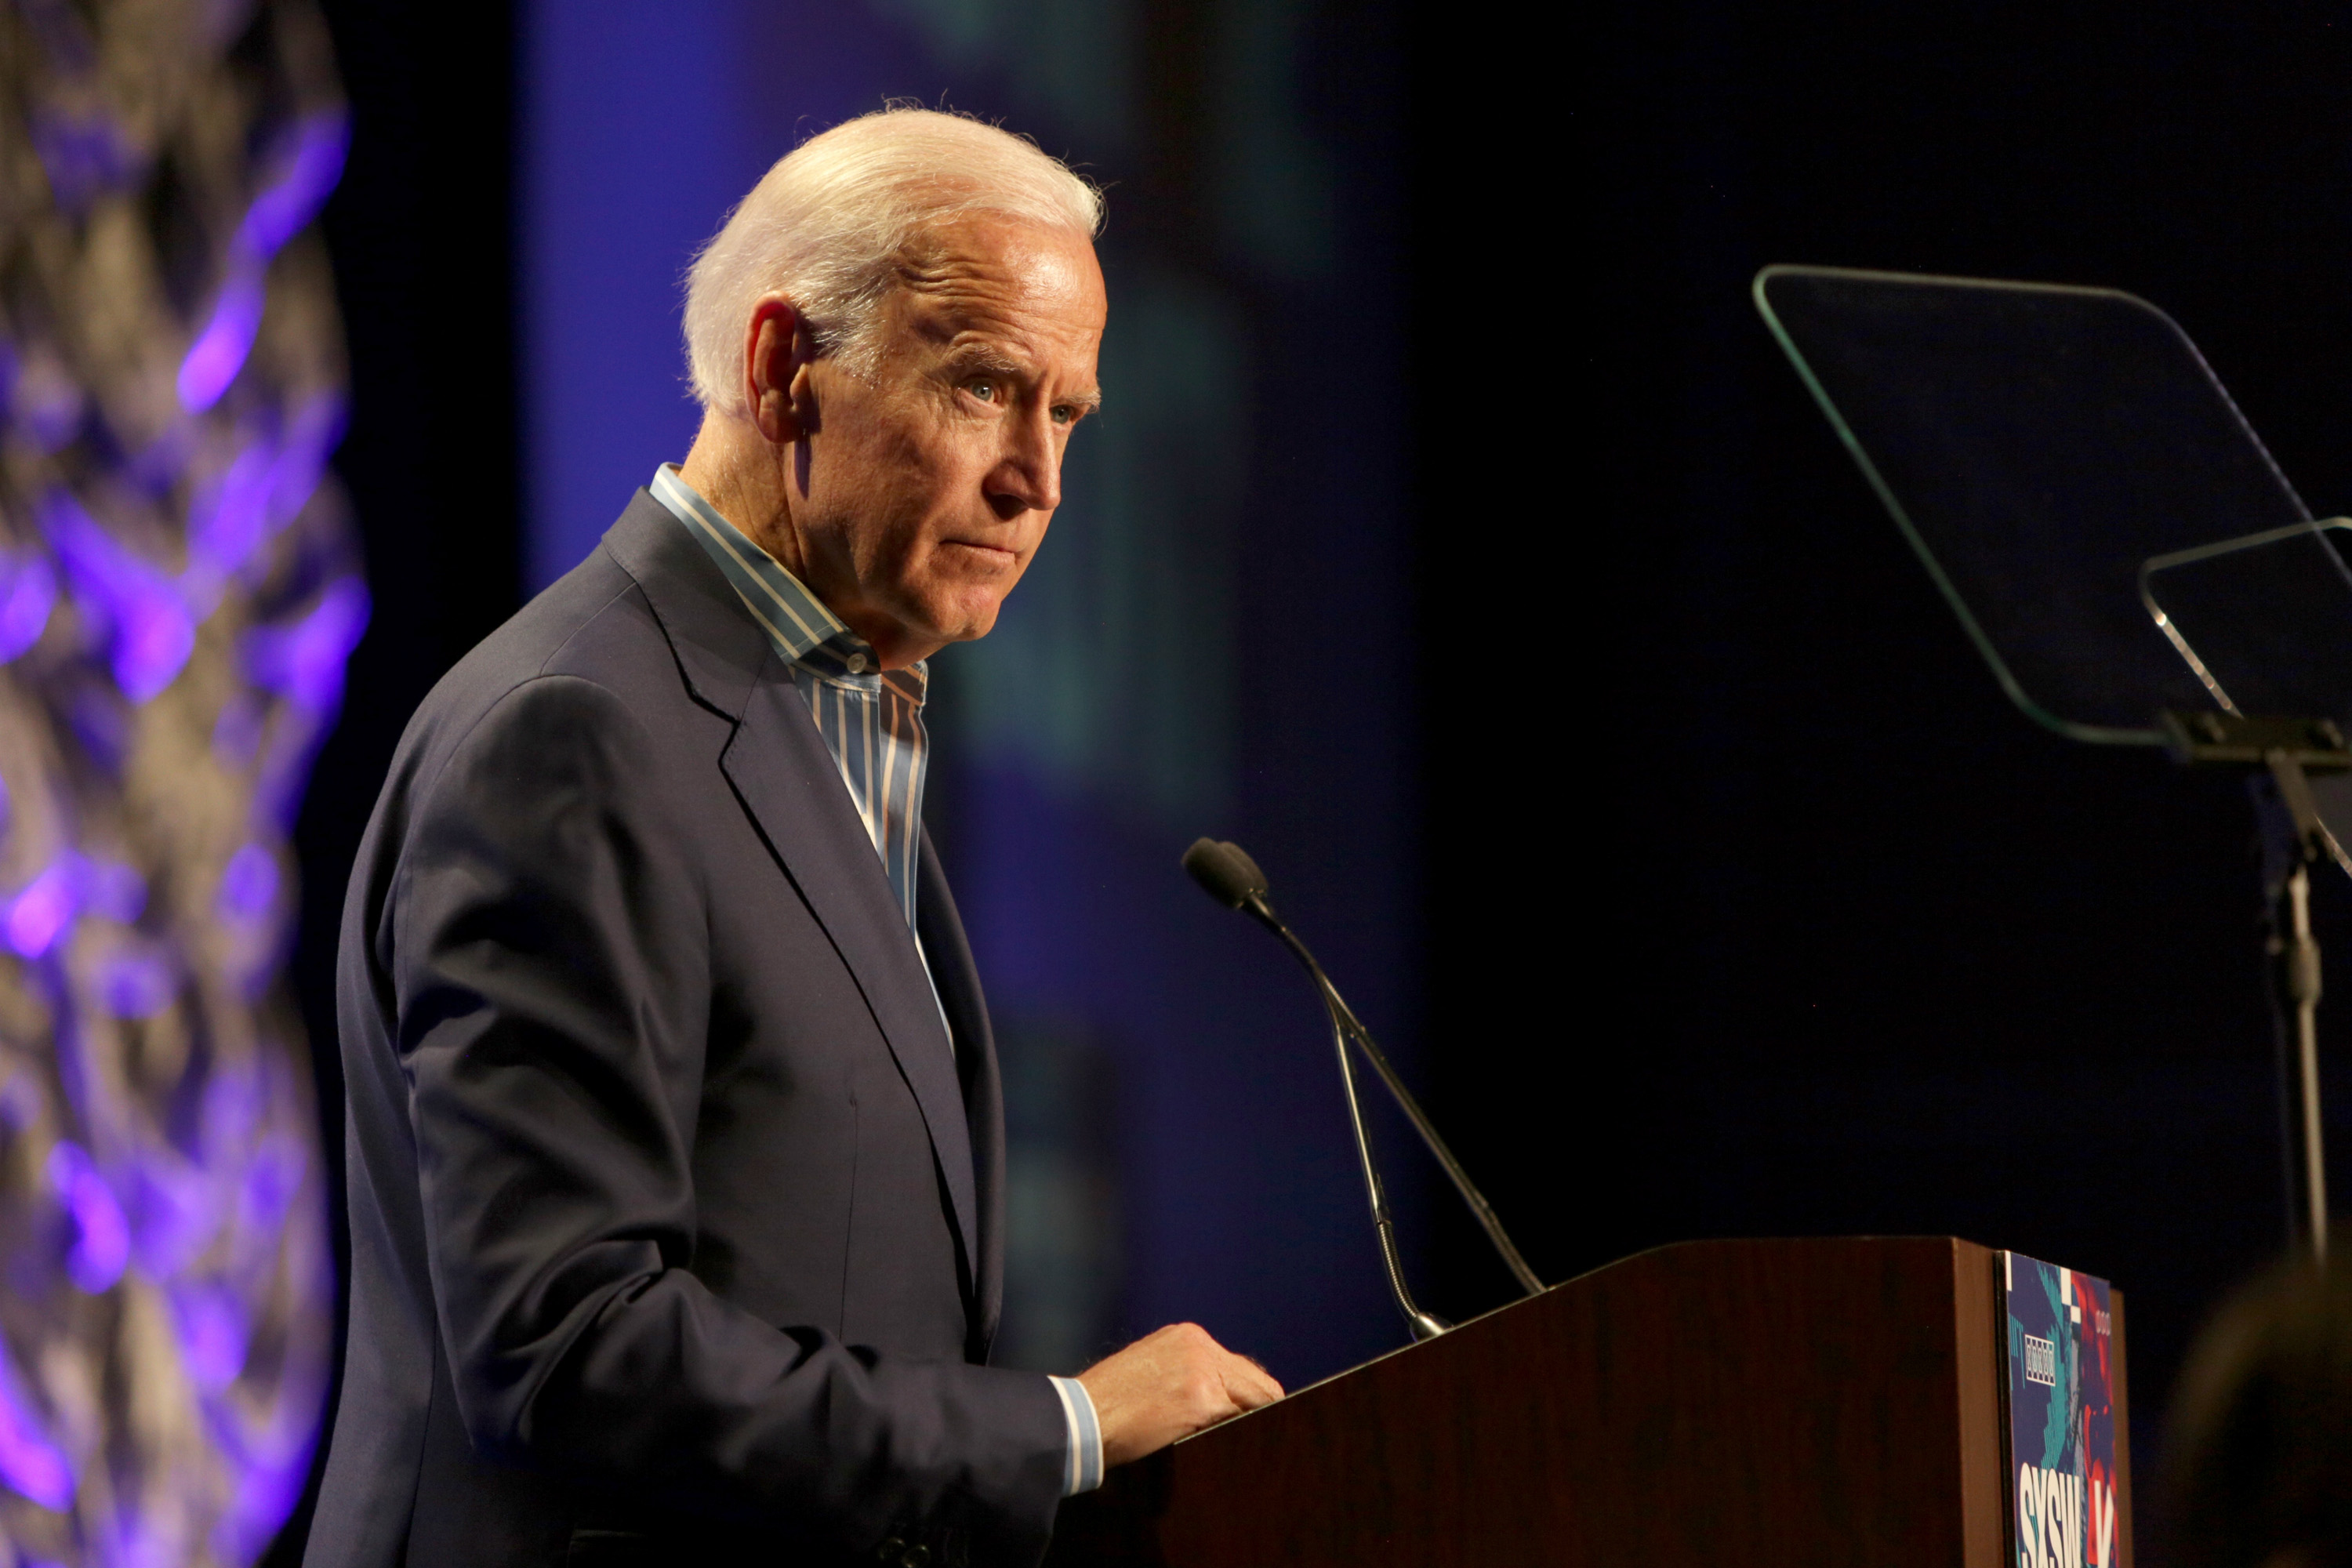 AUSTIN, TX - MARCH 12:  Vice President Joe Biden speaks onstage at  The Urgency Of Now: Launching The Biden Cancer Initiative' during 2017 SXSW Conference and Festivals at Austin Convention Center on March 12, 2017 in Austin, Texas.  (Photo by Mindy Best/Getty Images for SXSW)